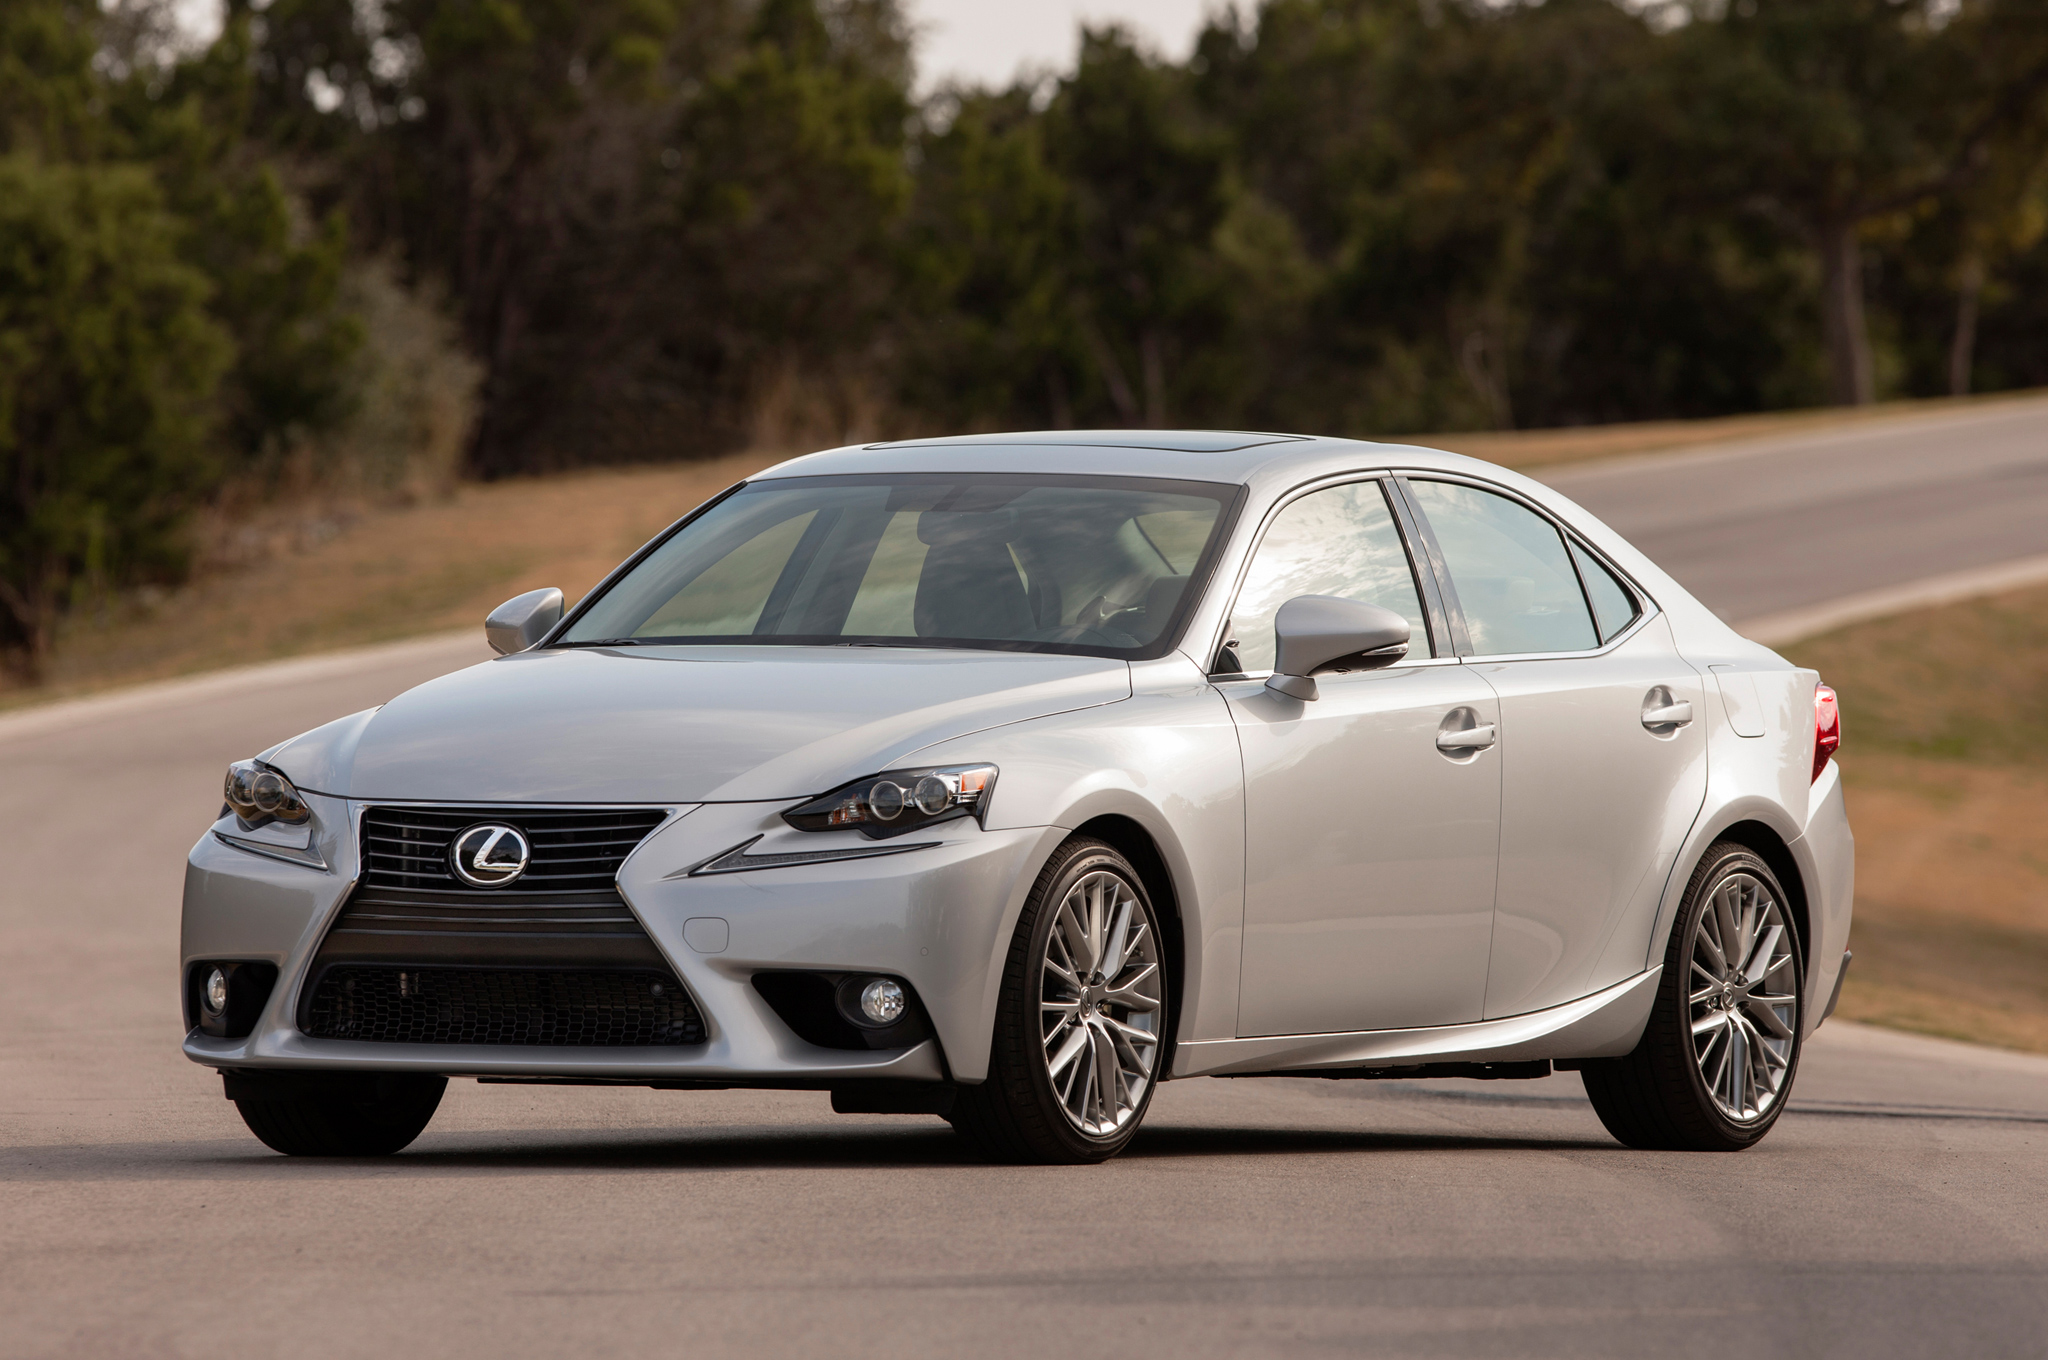 medium resolution of we hear lexus launching turbo four engine by 2015